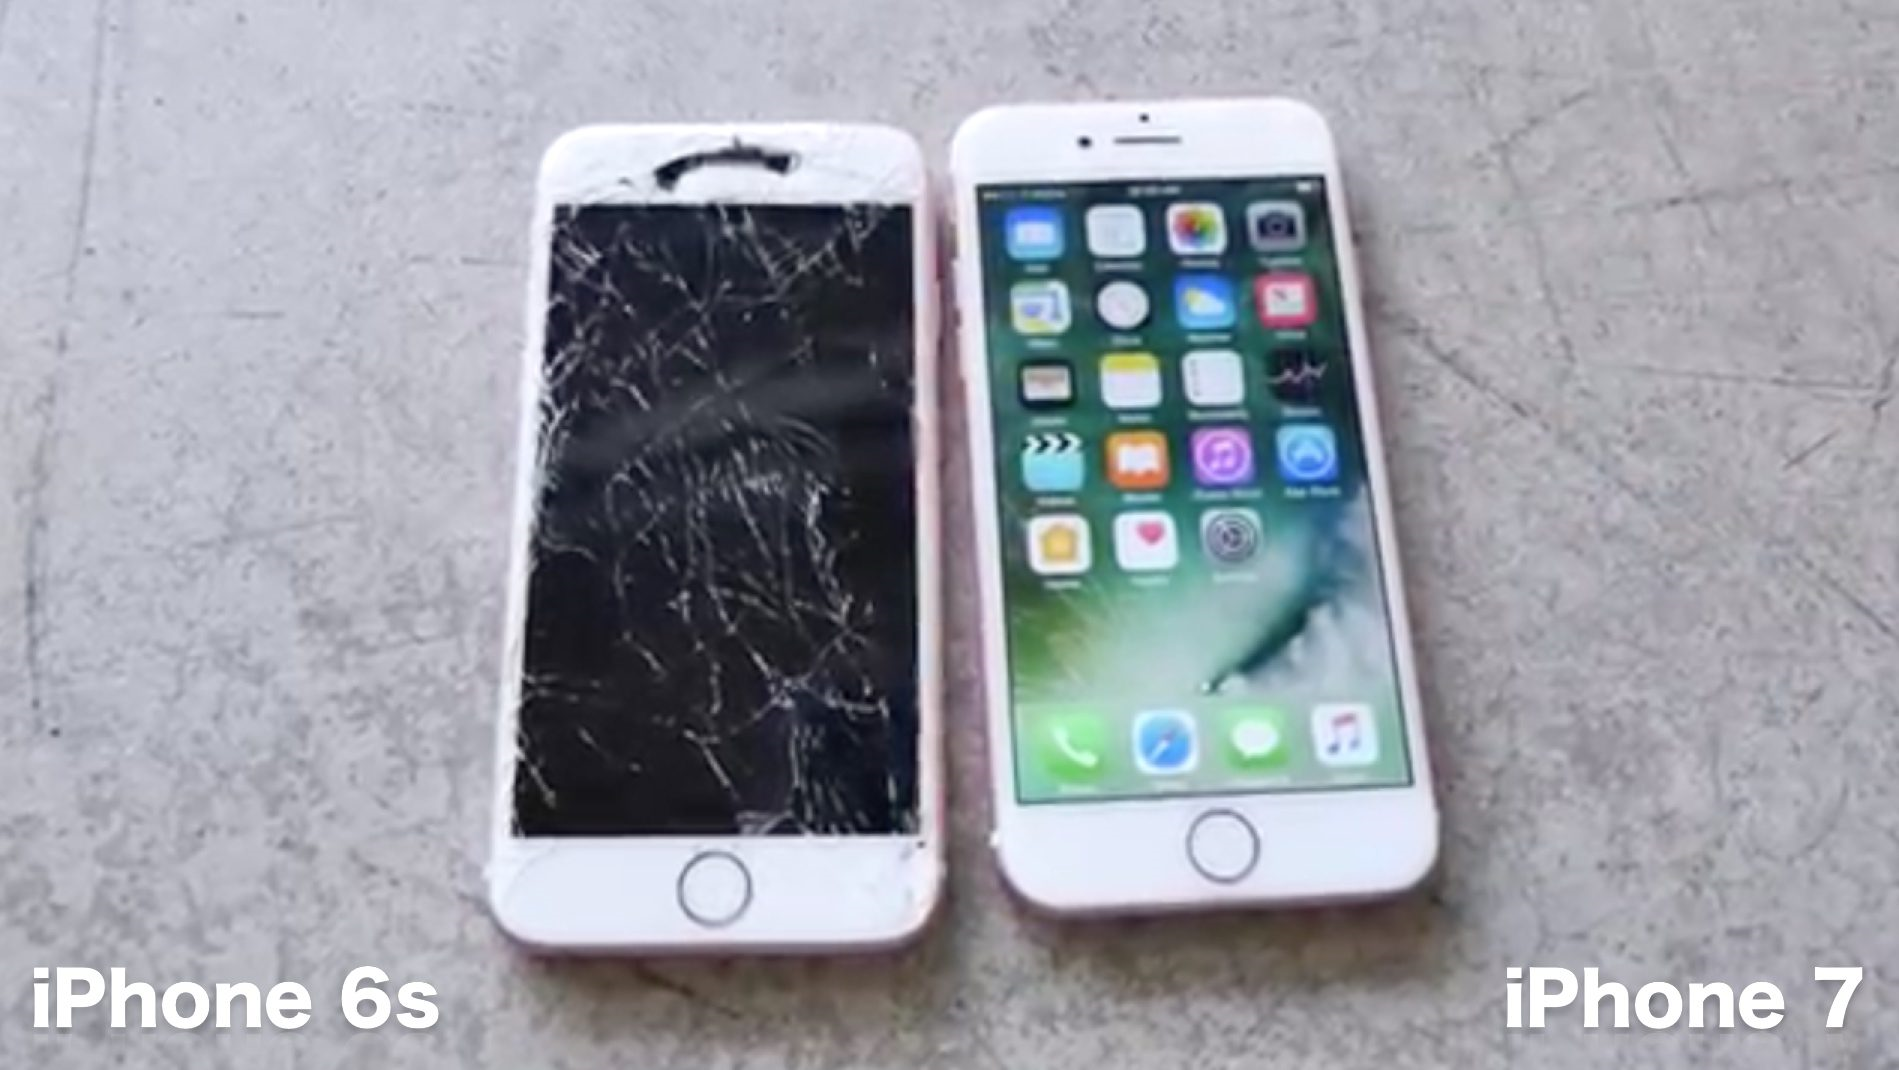 iPhone 7 contro iPhone 6s: chi resiste di più ai drop test?